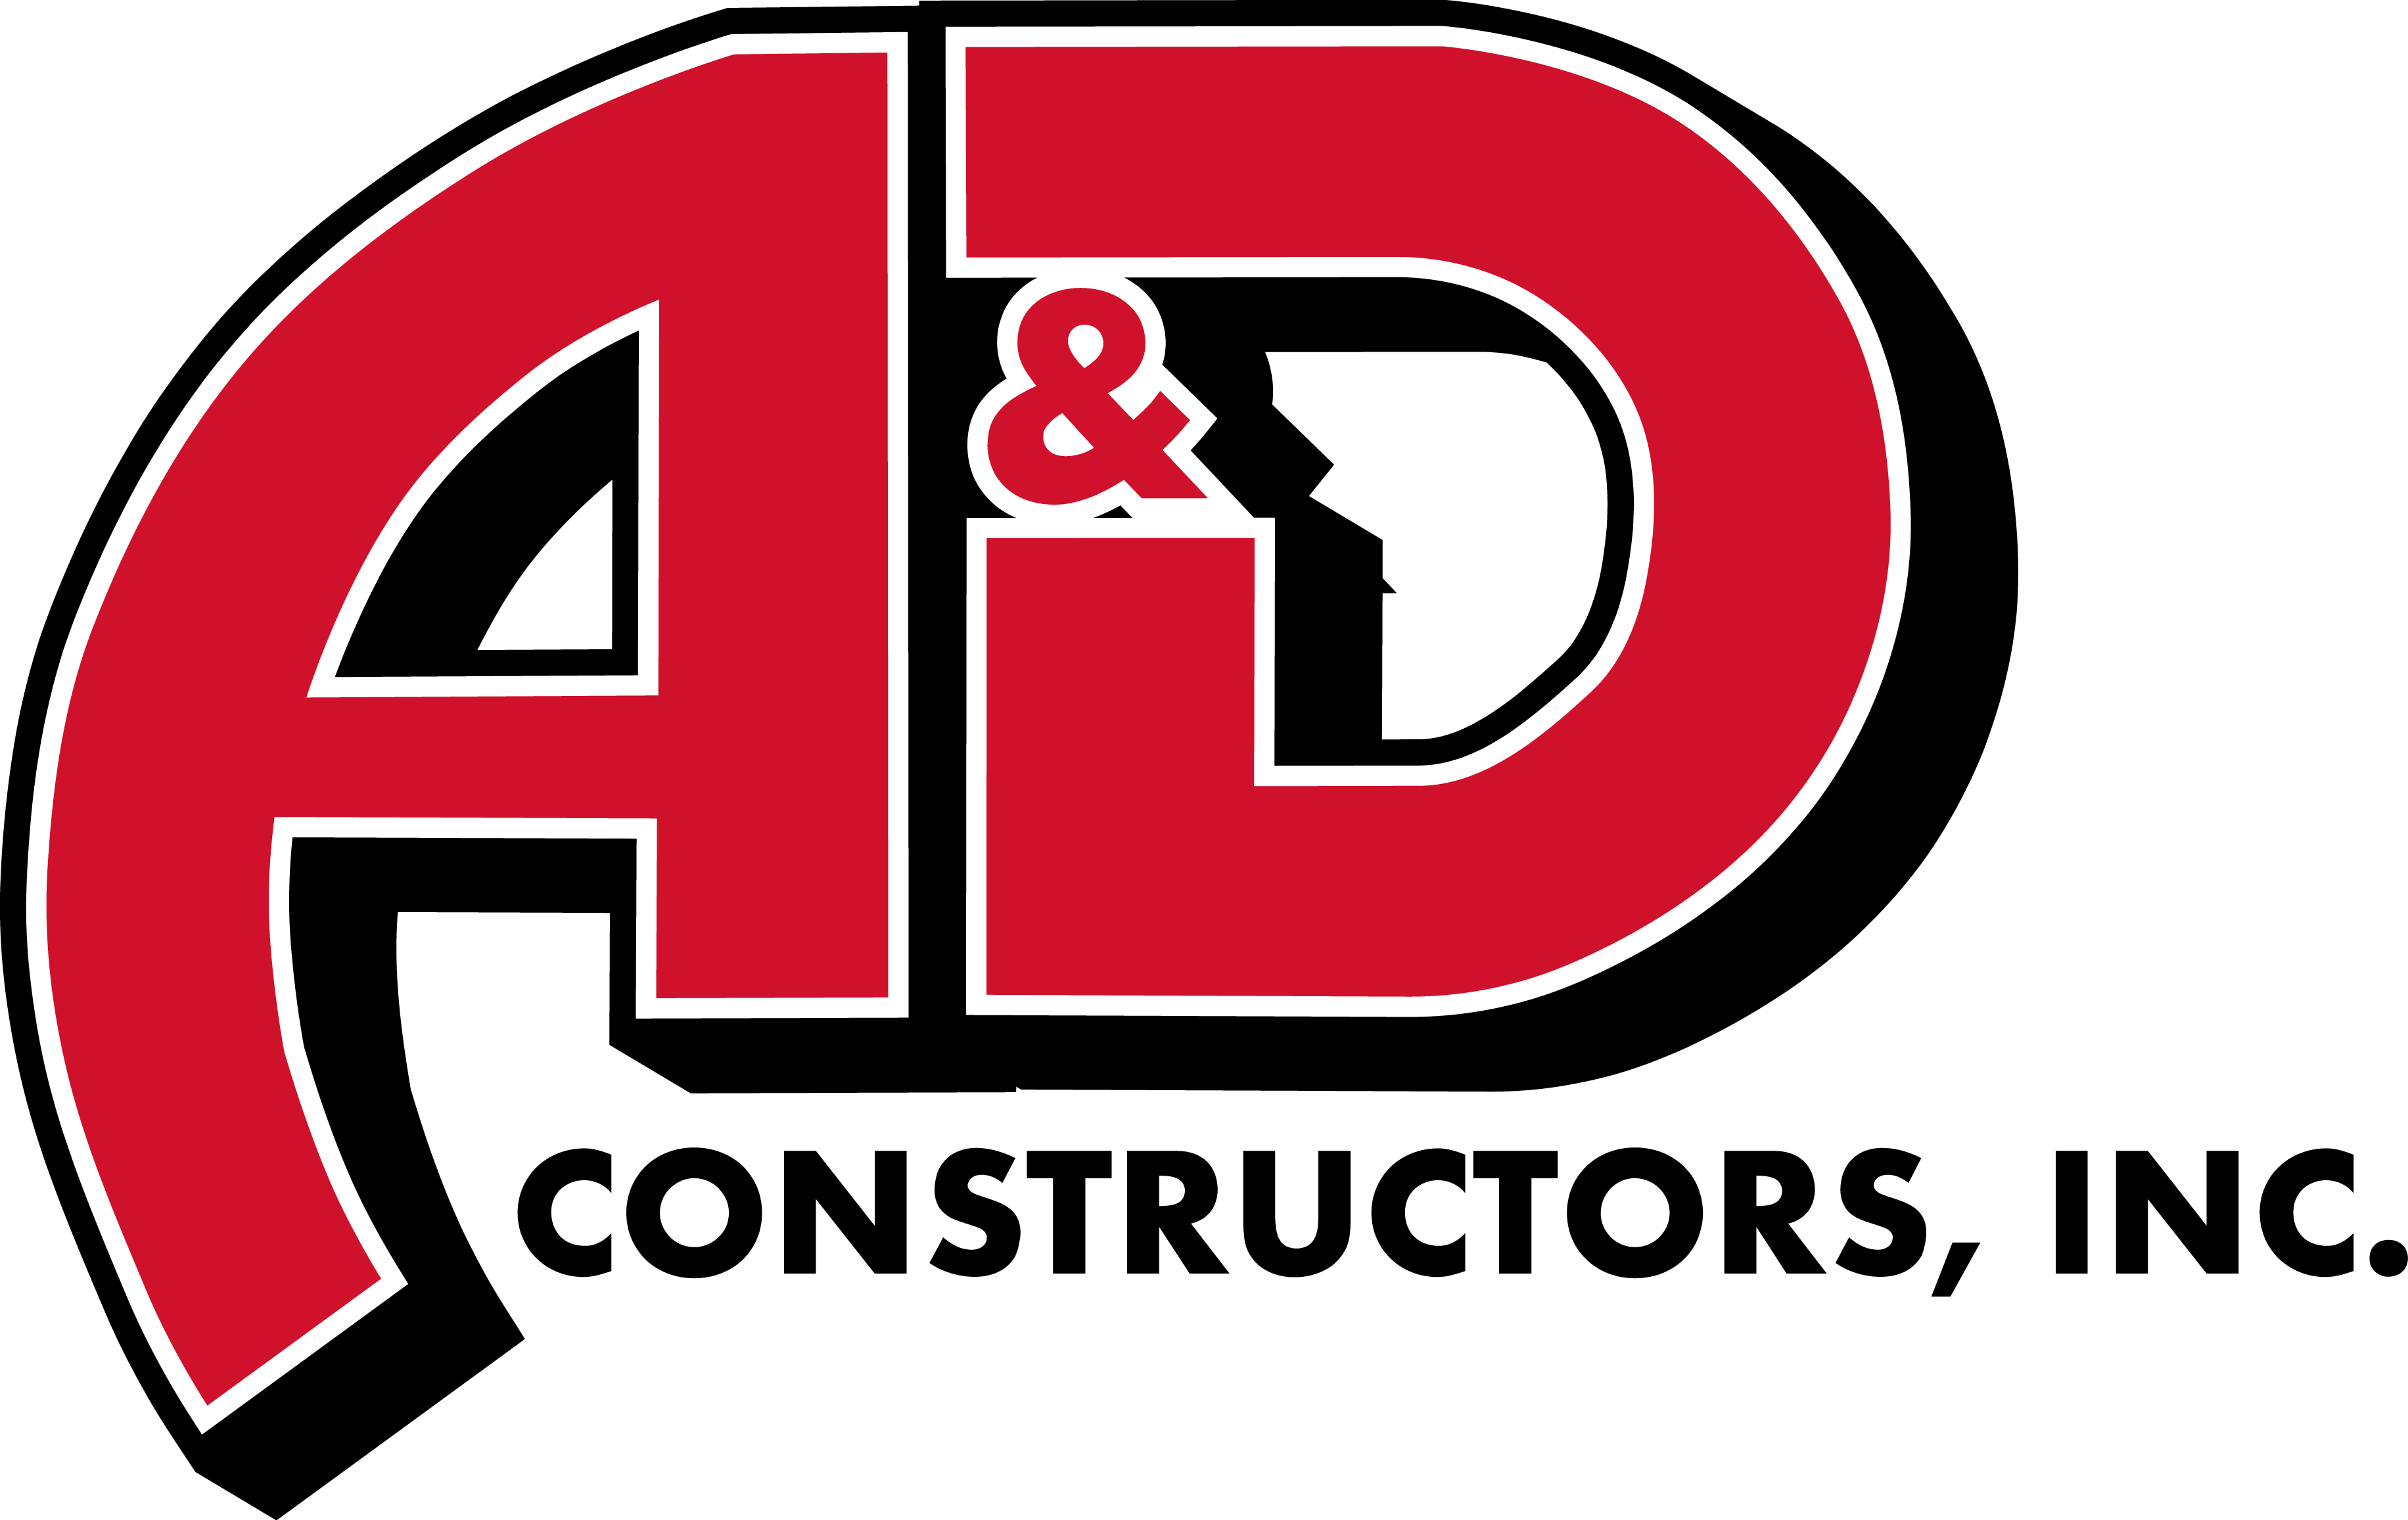 """Andrew Otero, Roger Ramsey, and their companies – A&D General Contracting, Inc. (""""A&D"""") and Action Telecom, Inc. (""""Action"""") Charged With Participated in a Conspiracy to Defraud the Government"""